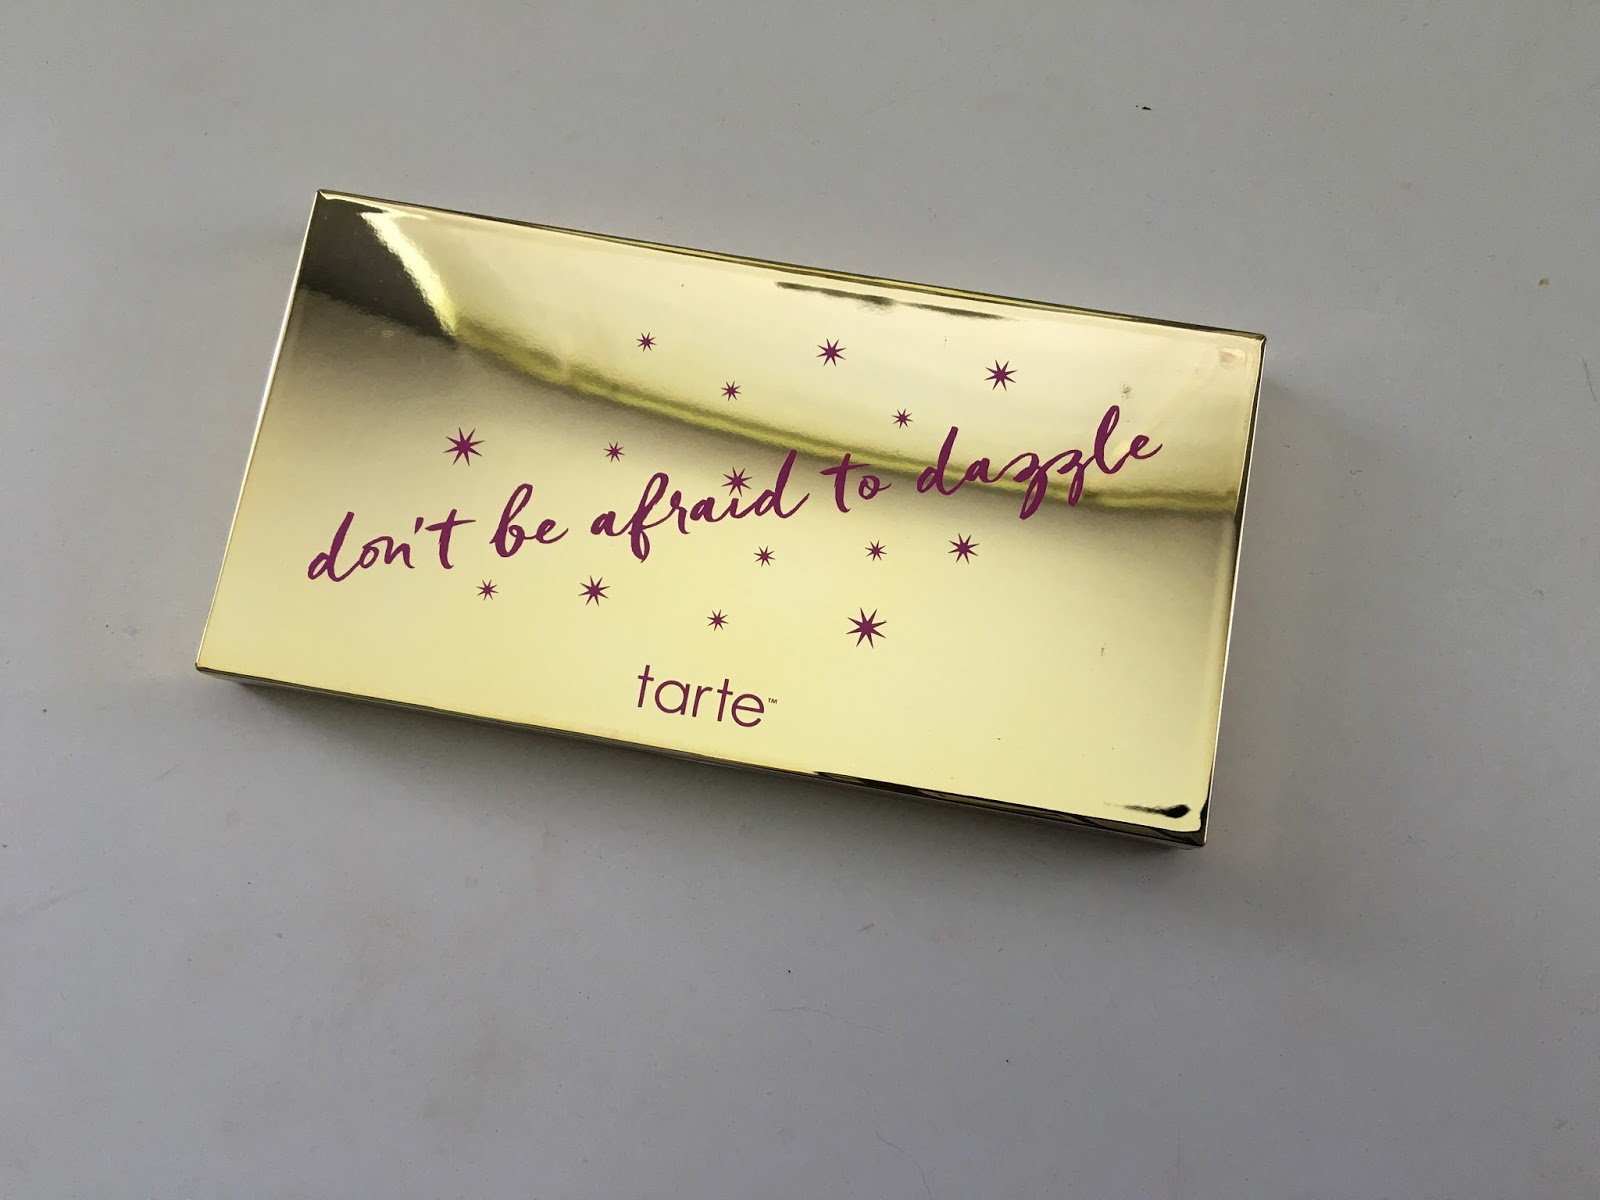 Don't Be Afraid To Dazzle Contour & Highlight Palette by Tarte #18